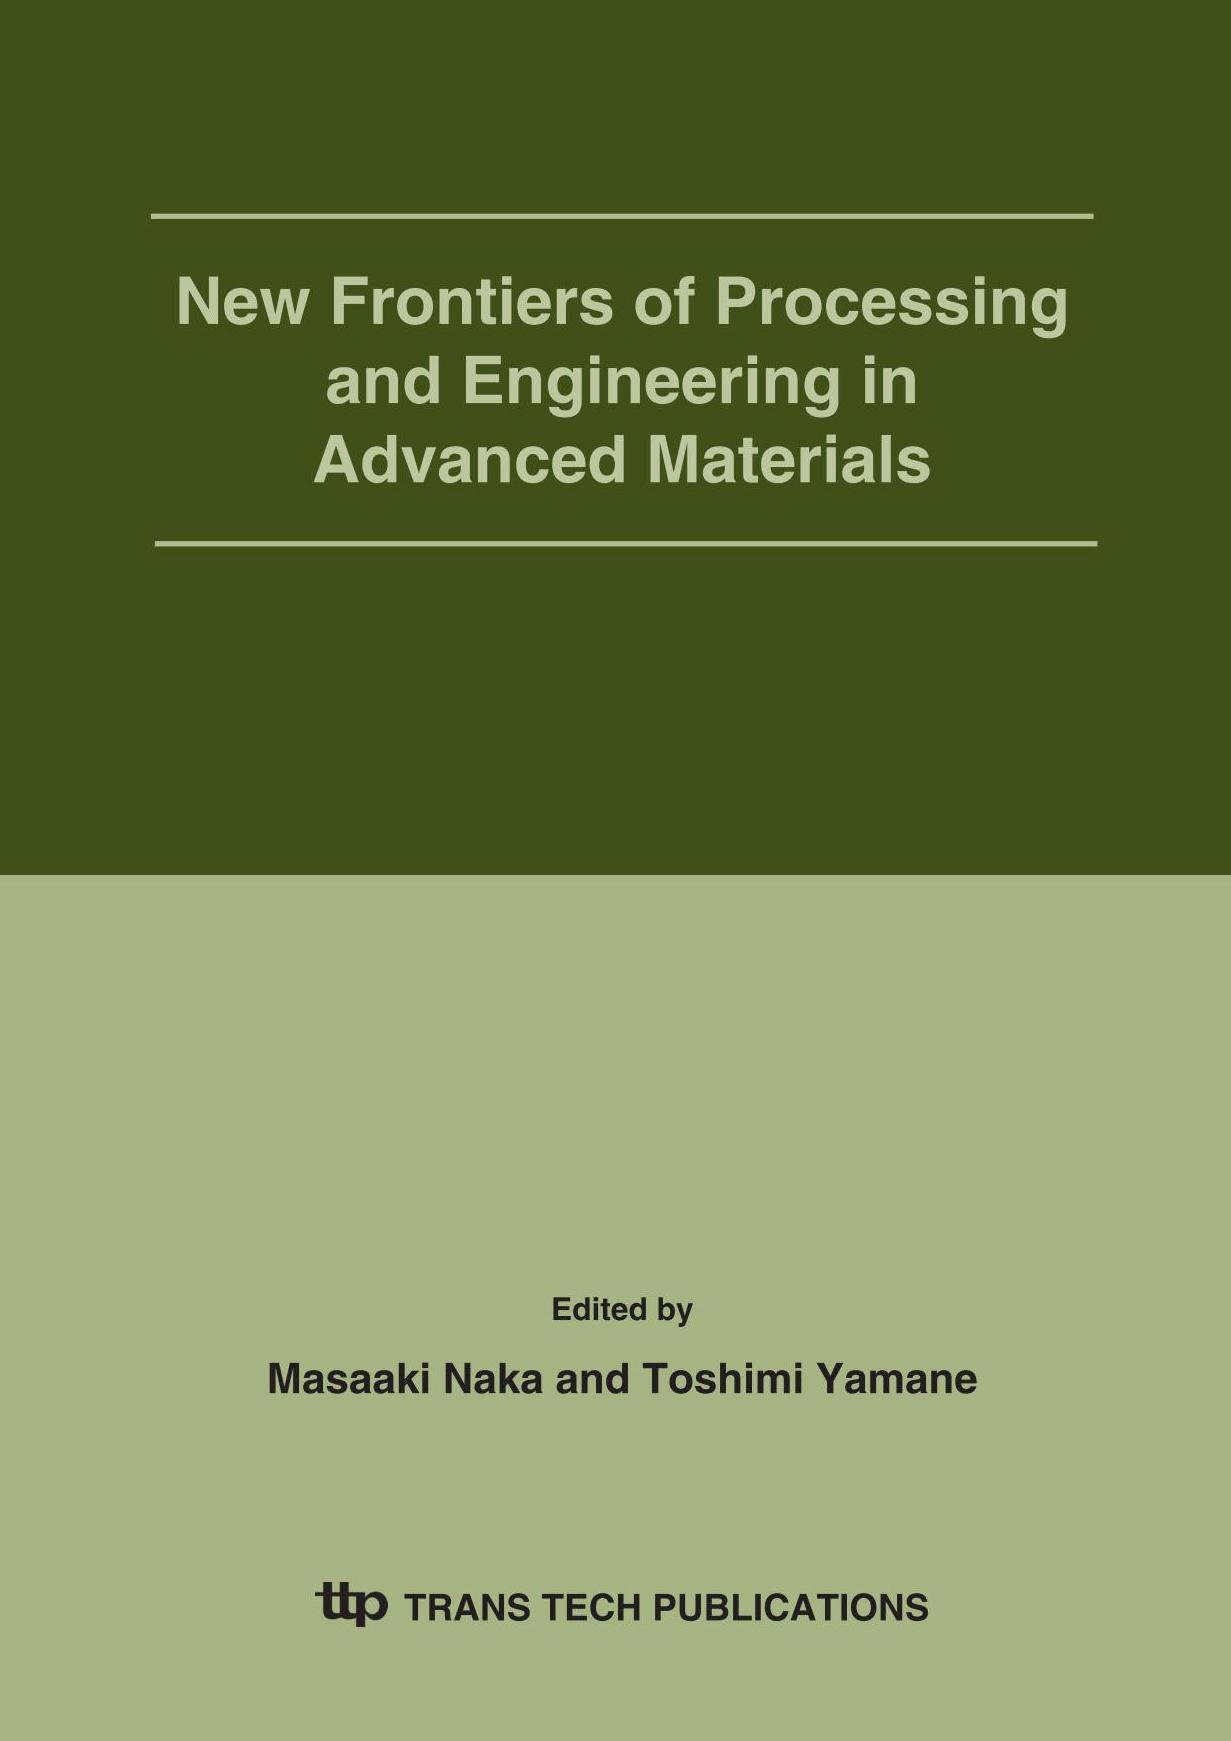 New Frontiers of Processing and Engineering in Advanced Materials